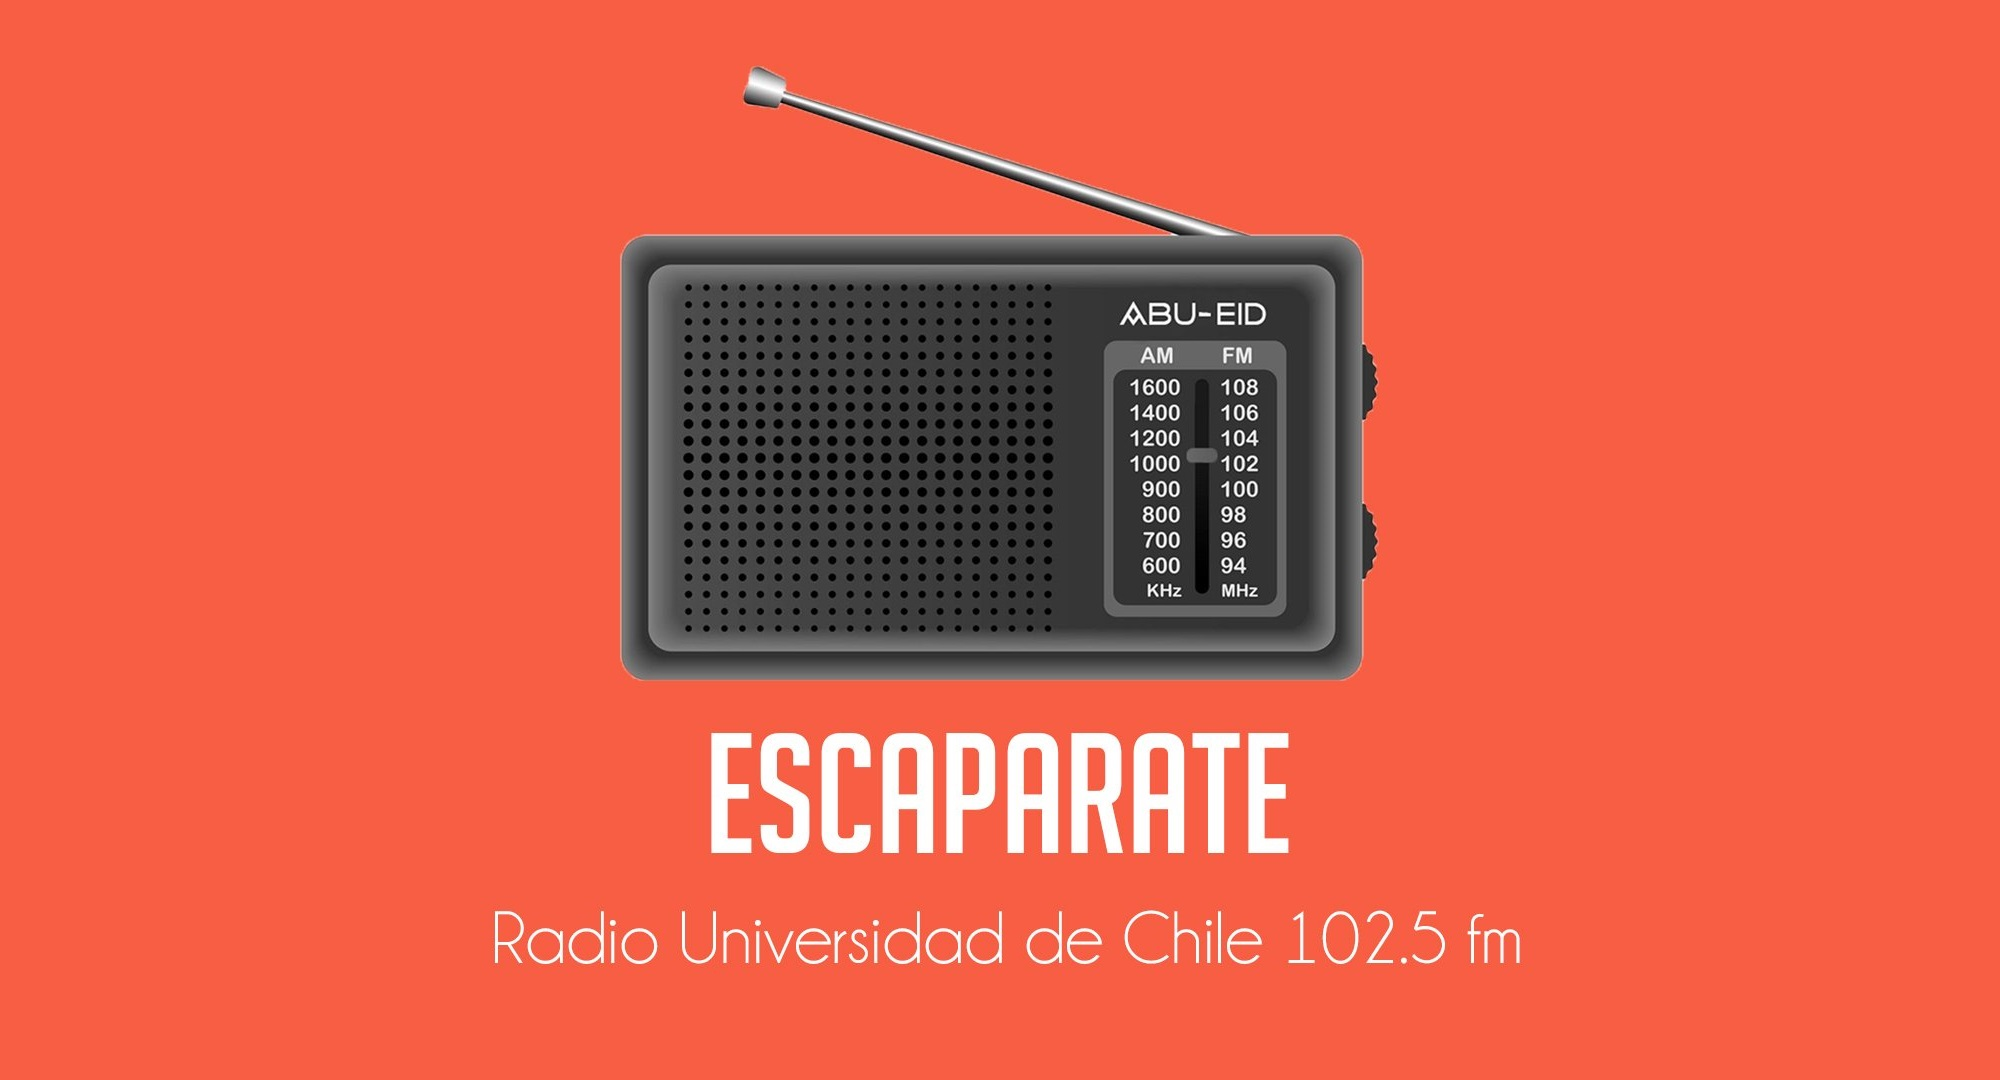 Escaparate XYAA73l9